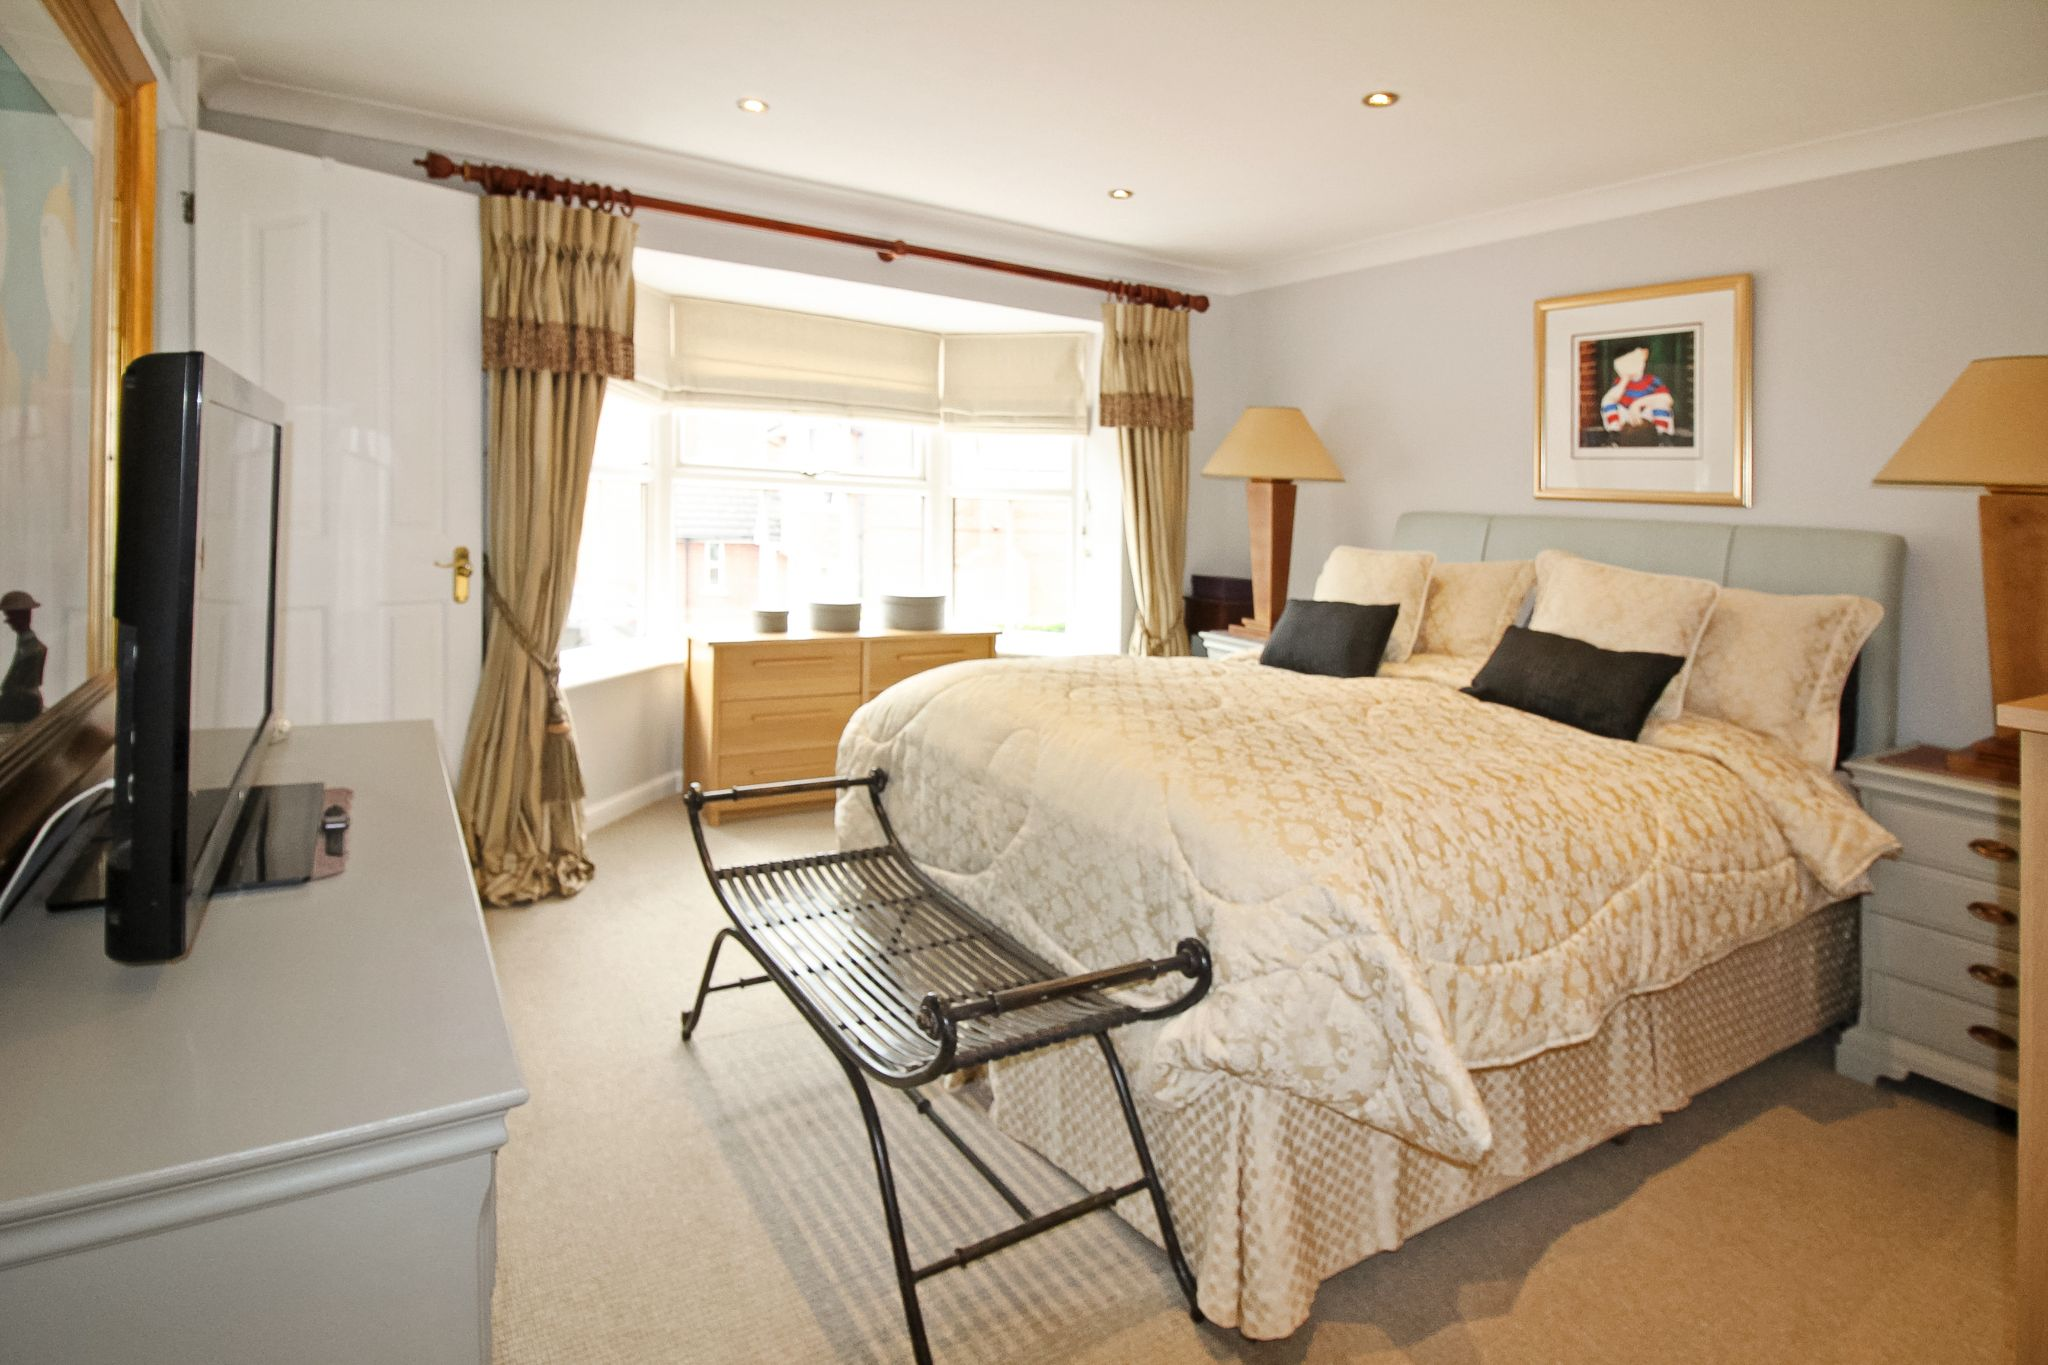 4 bedroom detached house For Sale in Solihull - Photograph 8.